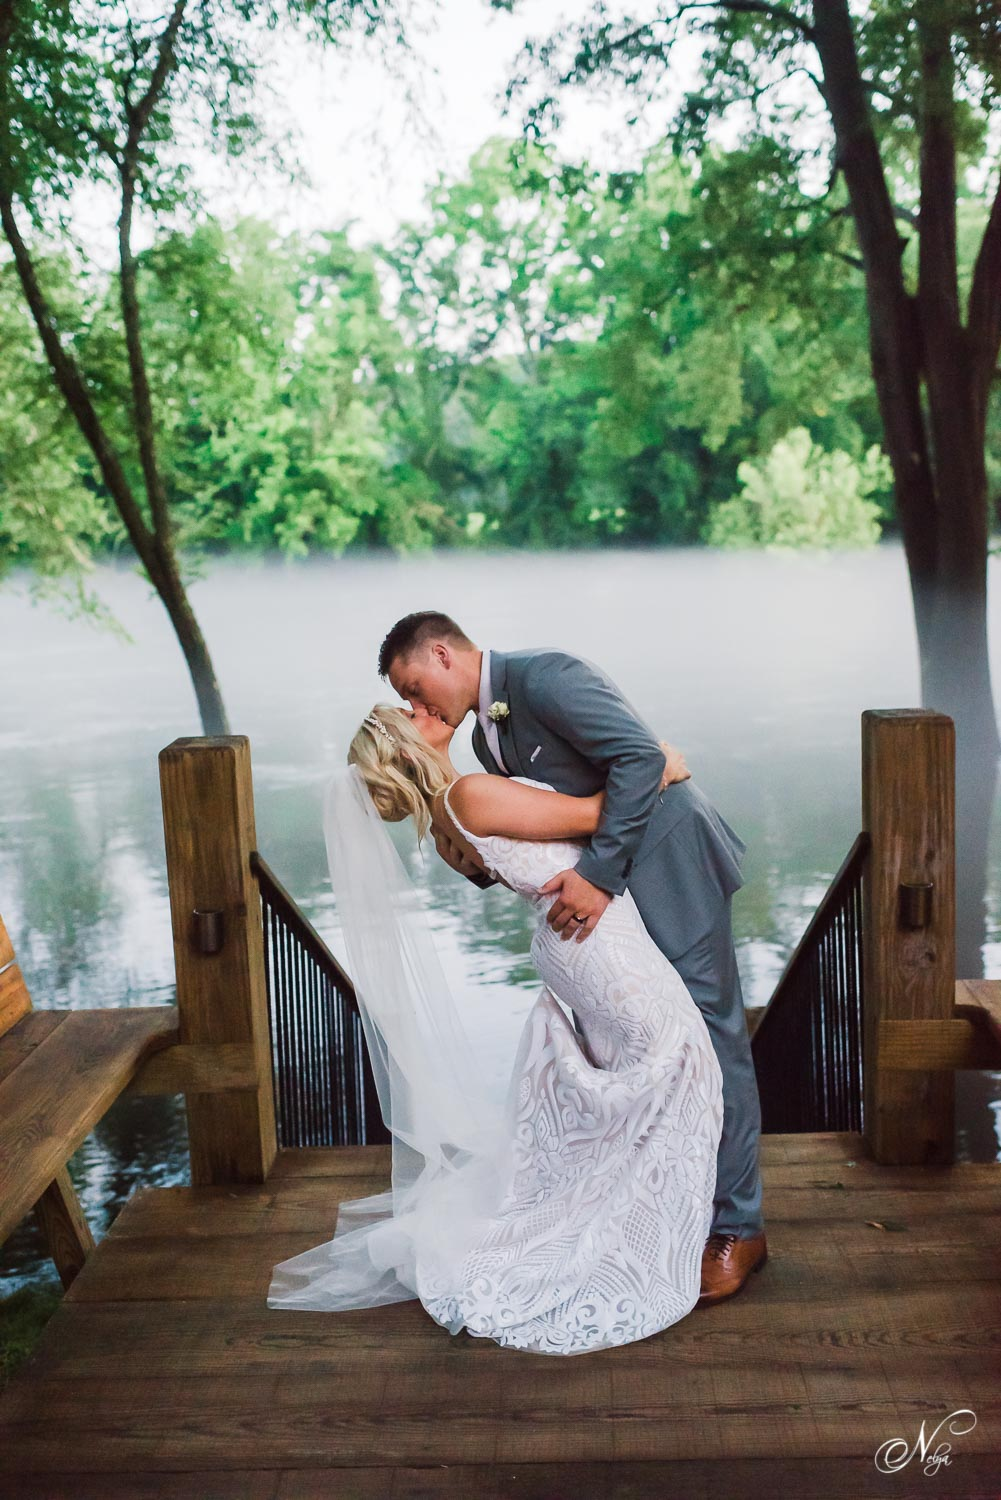 wedding couple kissing on lower stair case at Hiwassee River Weddings in the fog.